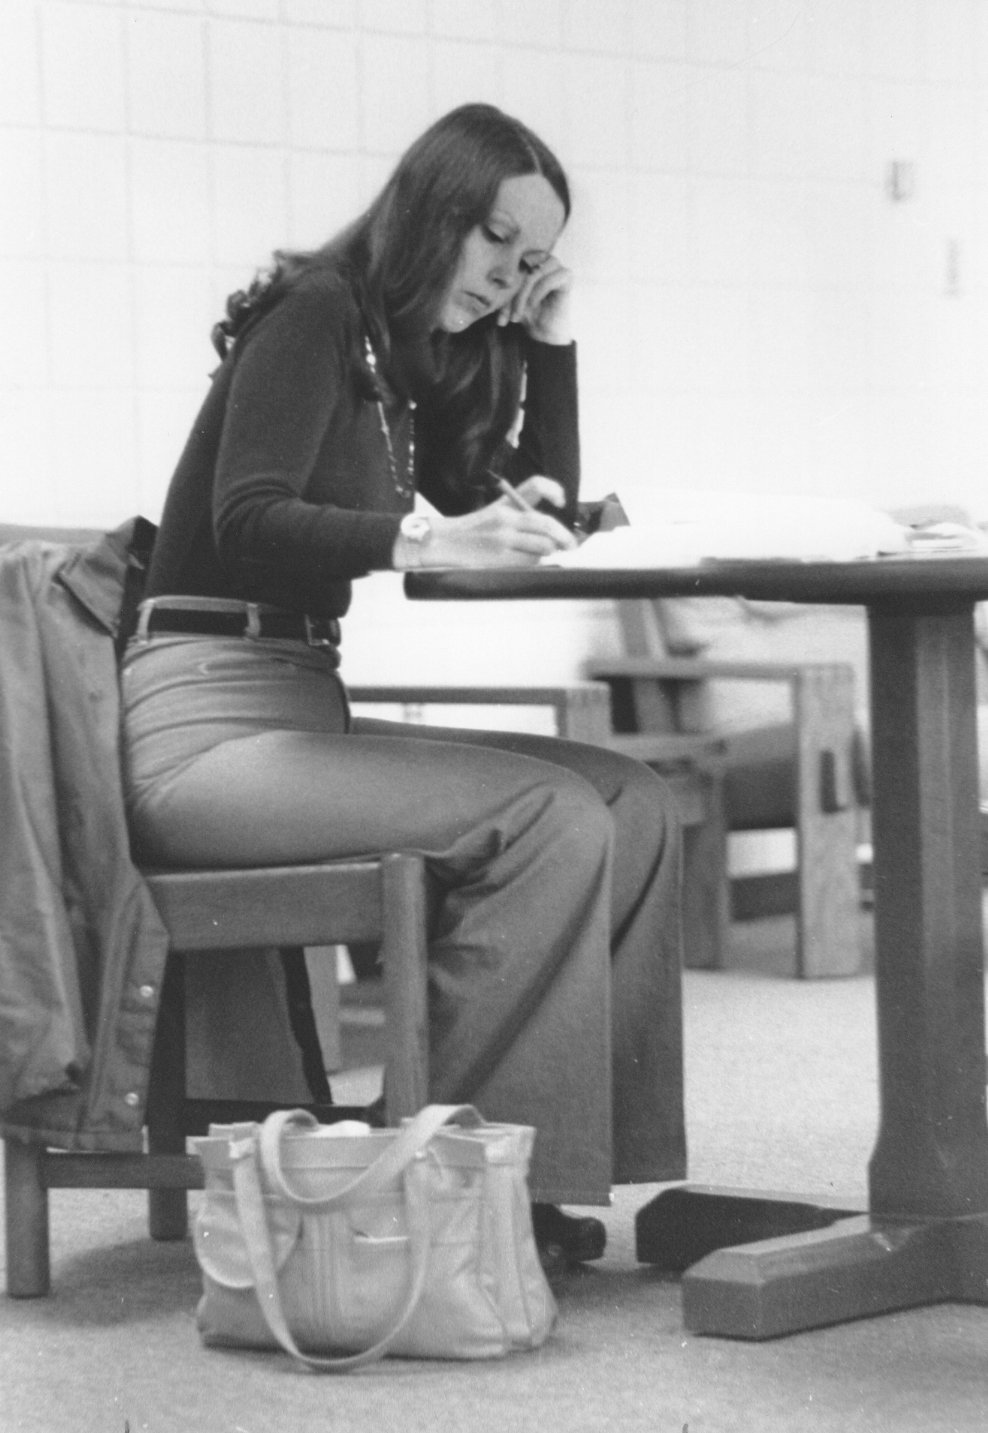 A student studies at a desk in the 1970's.